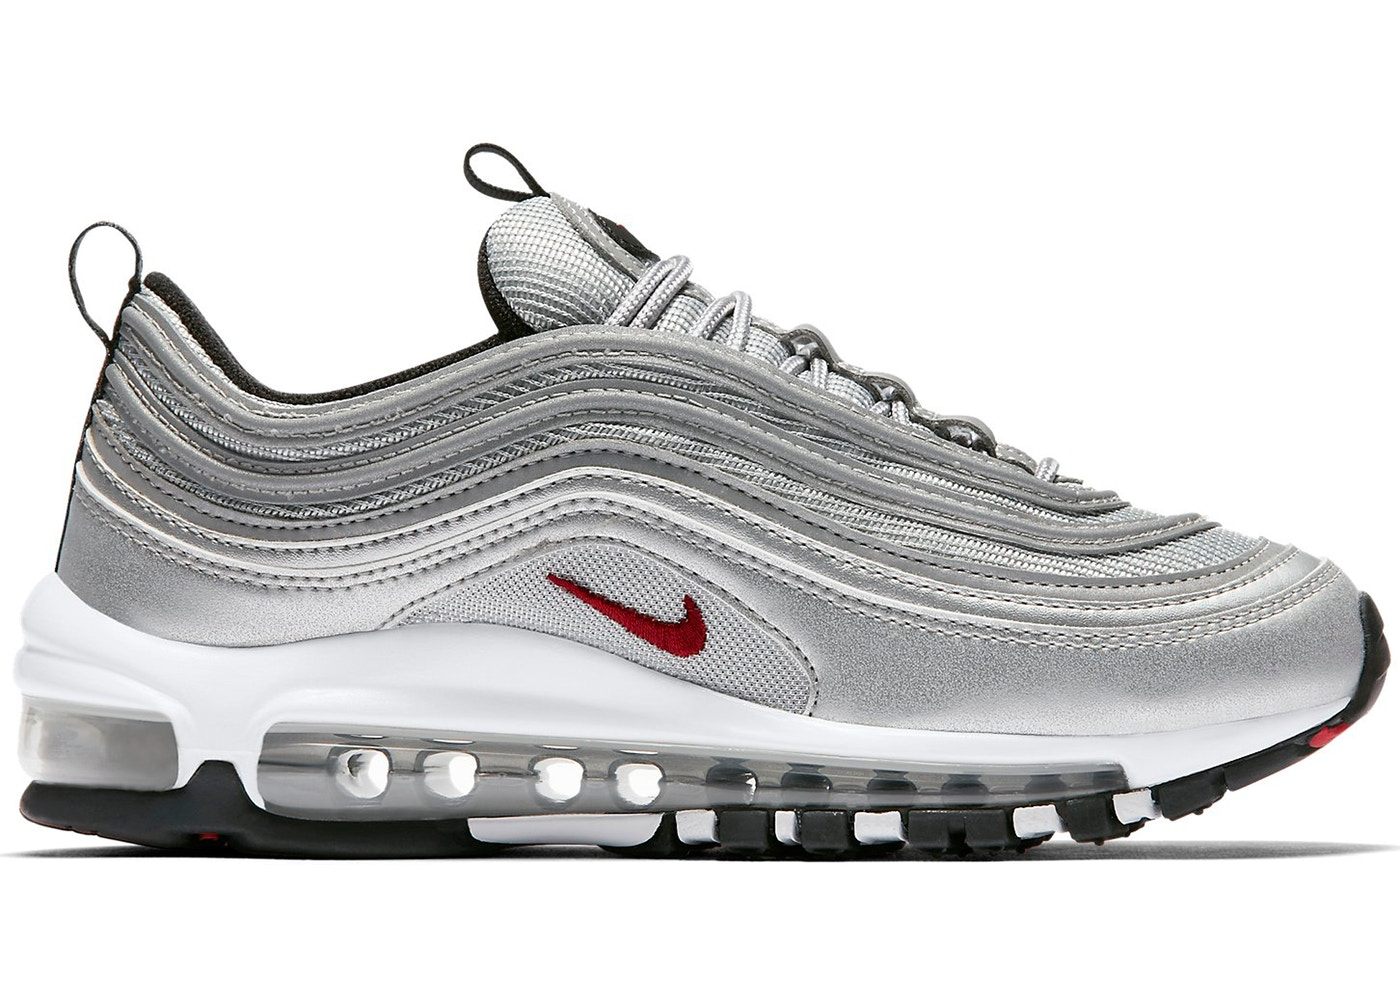 Nike Air Max 97 'Summit White' Release Date. Nike SNKRS